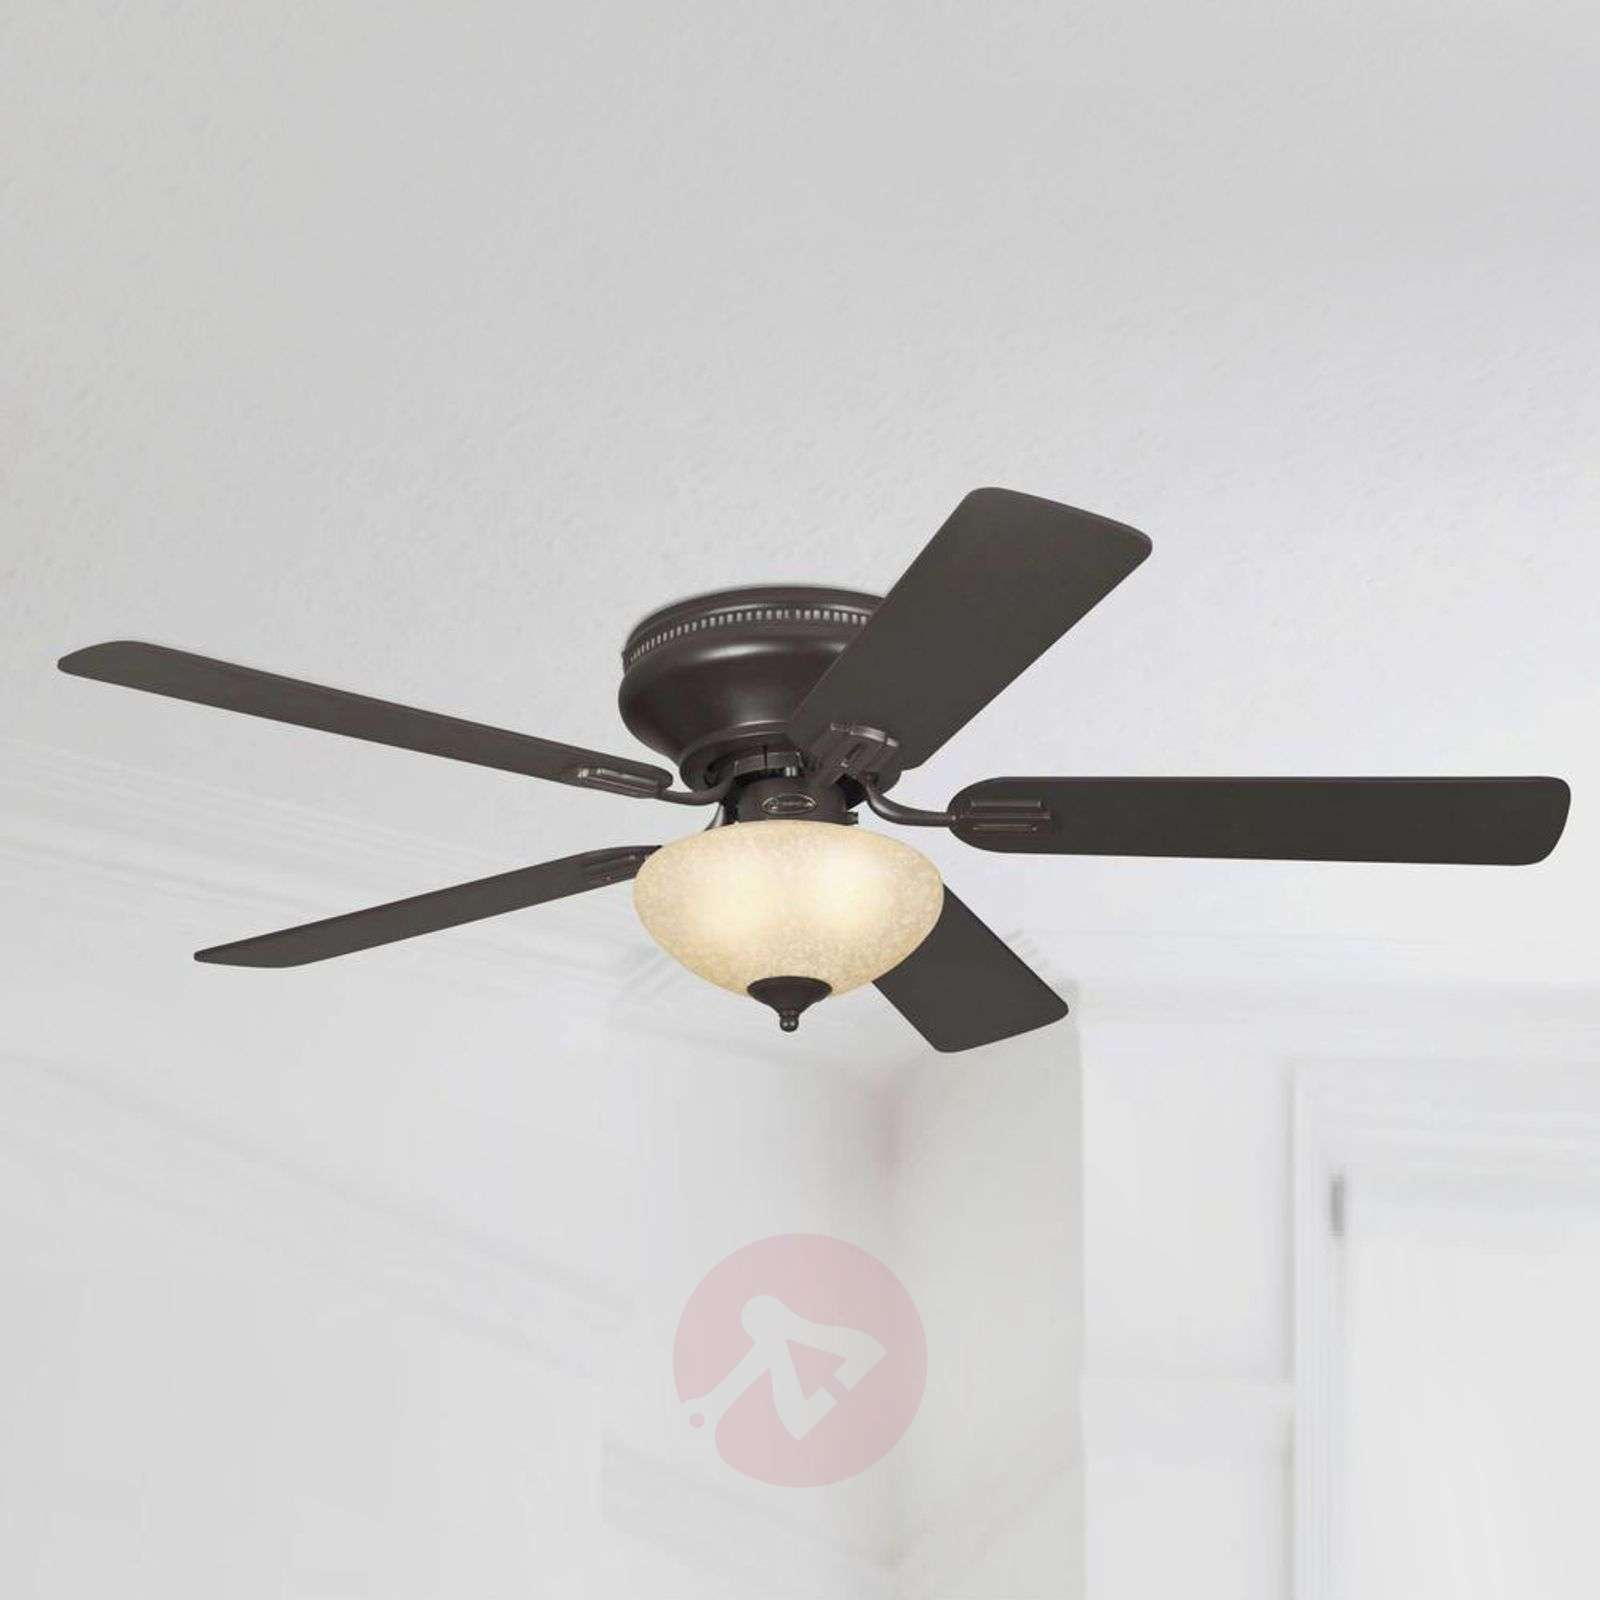 Everett rustic ceiling fan with light | Lights.co.uk